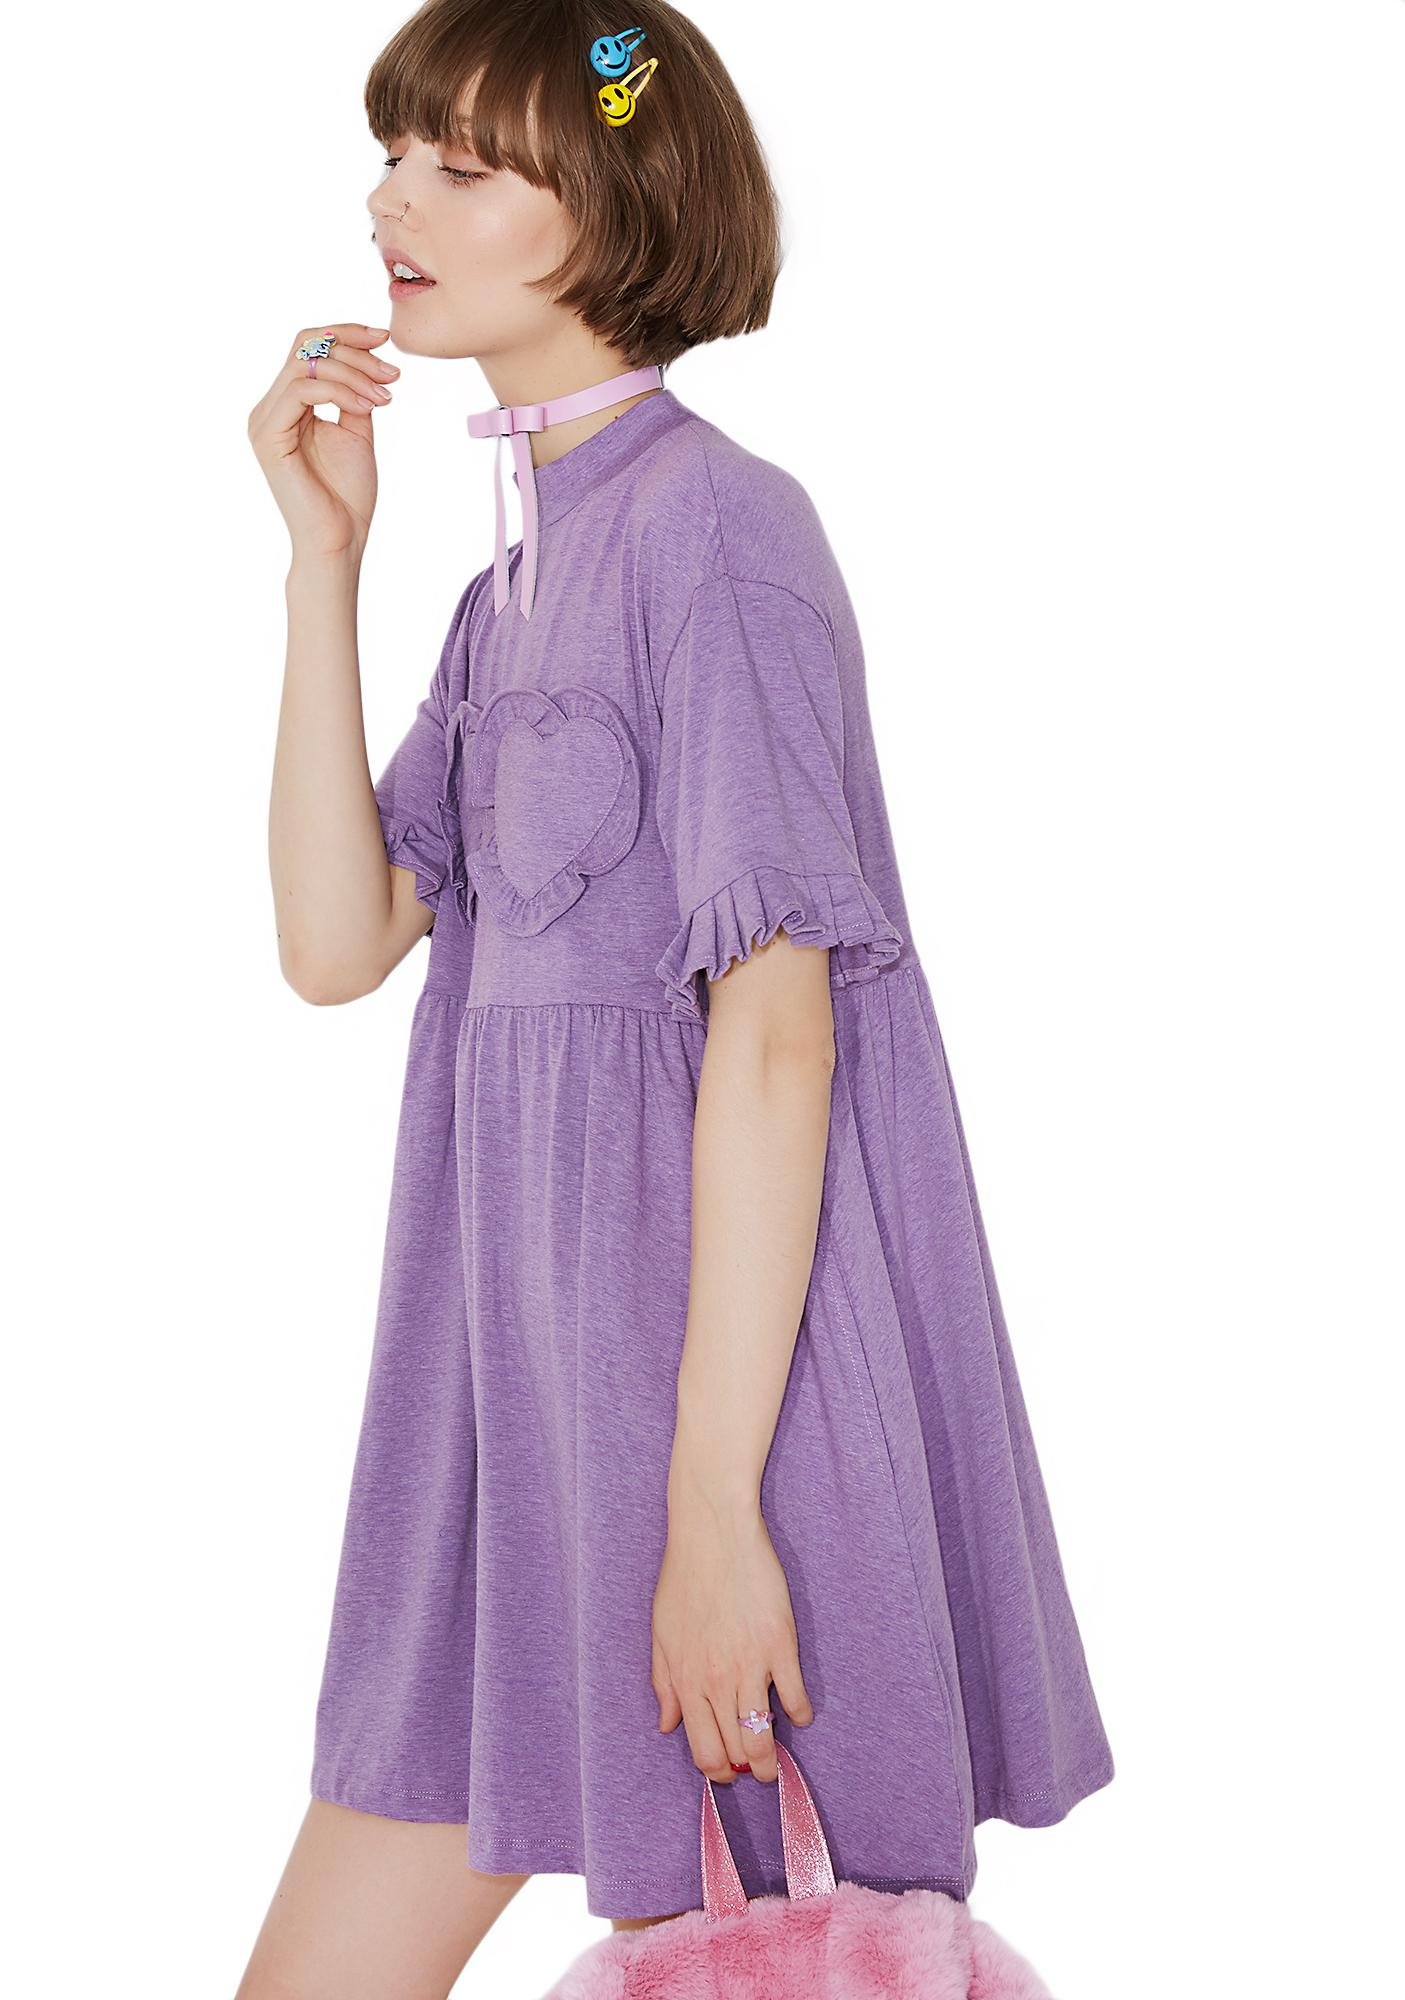 Lazy Oaf Purple Frilly Hearts Dress